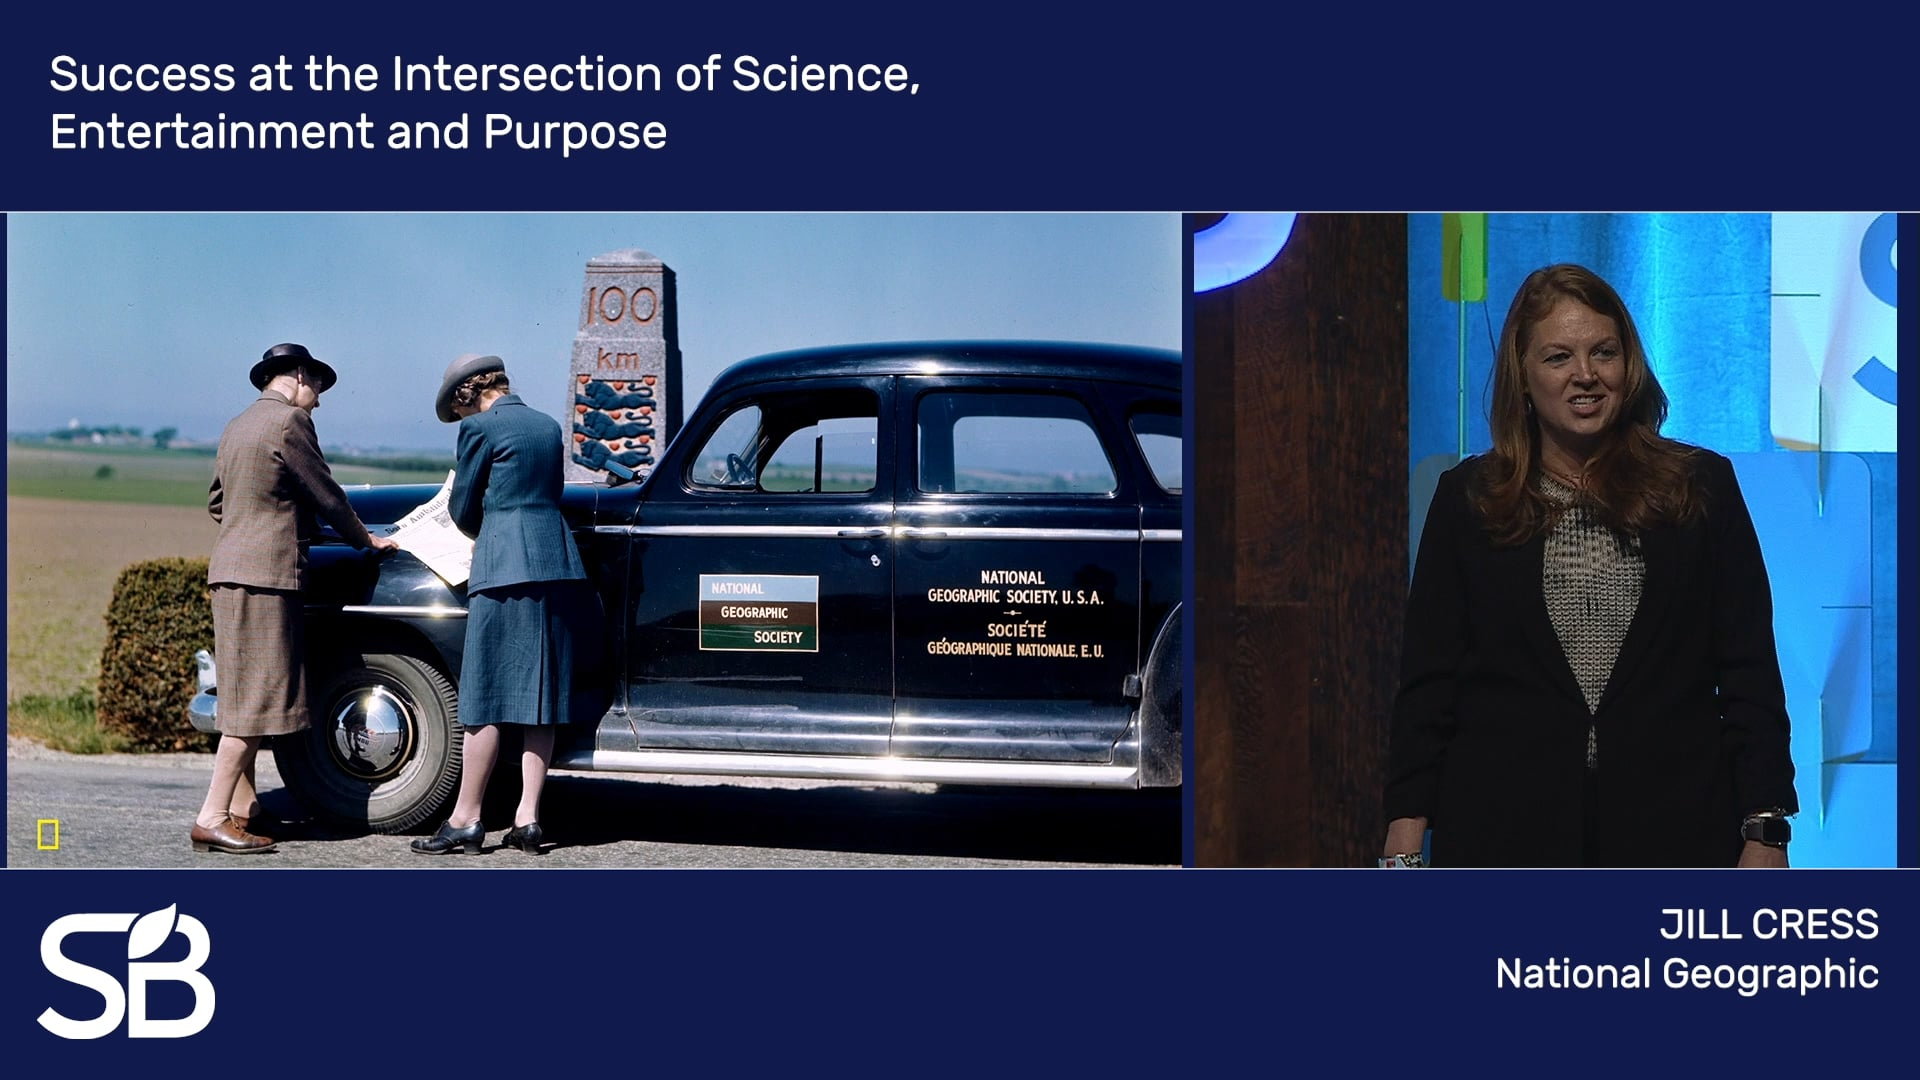 SB'18 Vancouver Keynote / Success at the Intersection of Science, Entertainment and Purpose